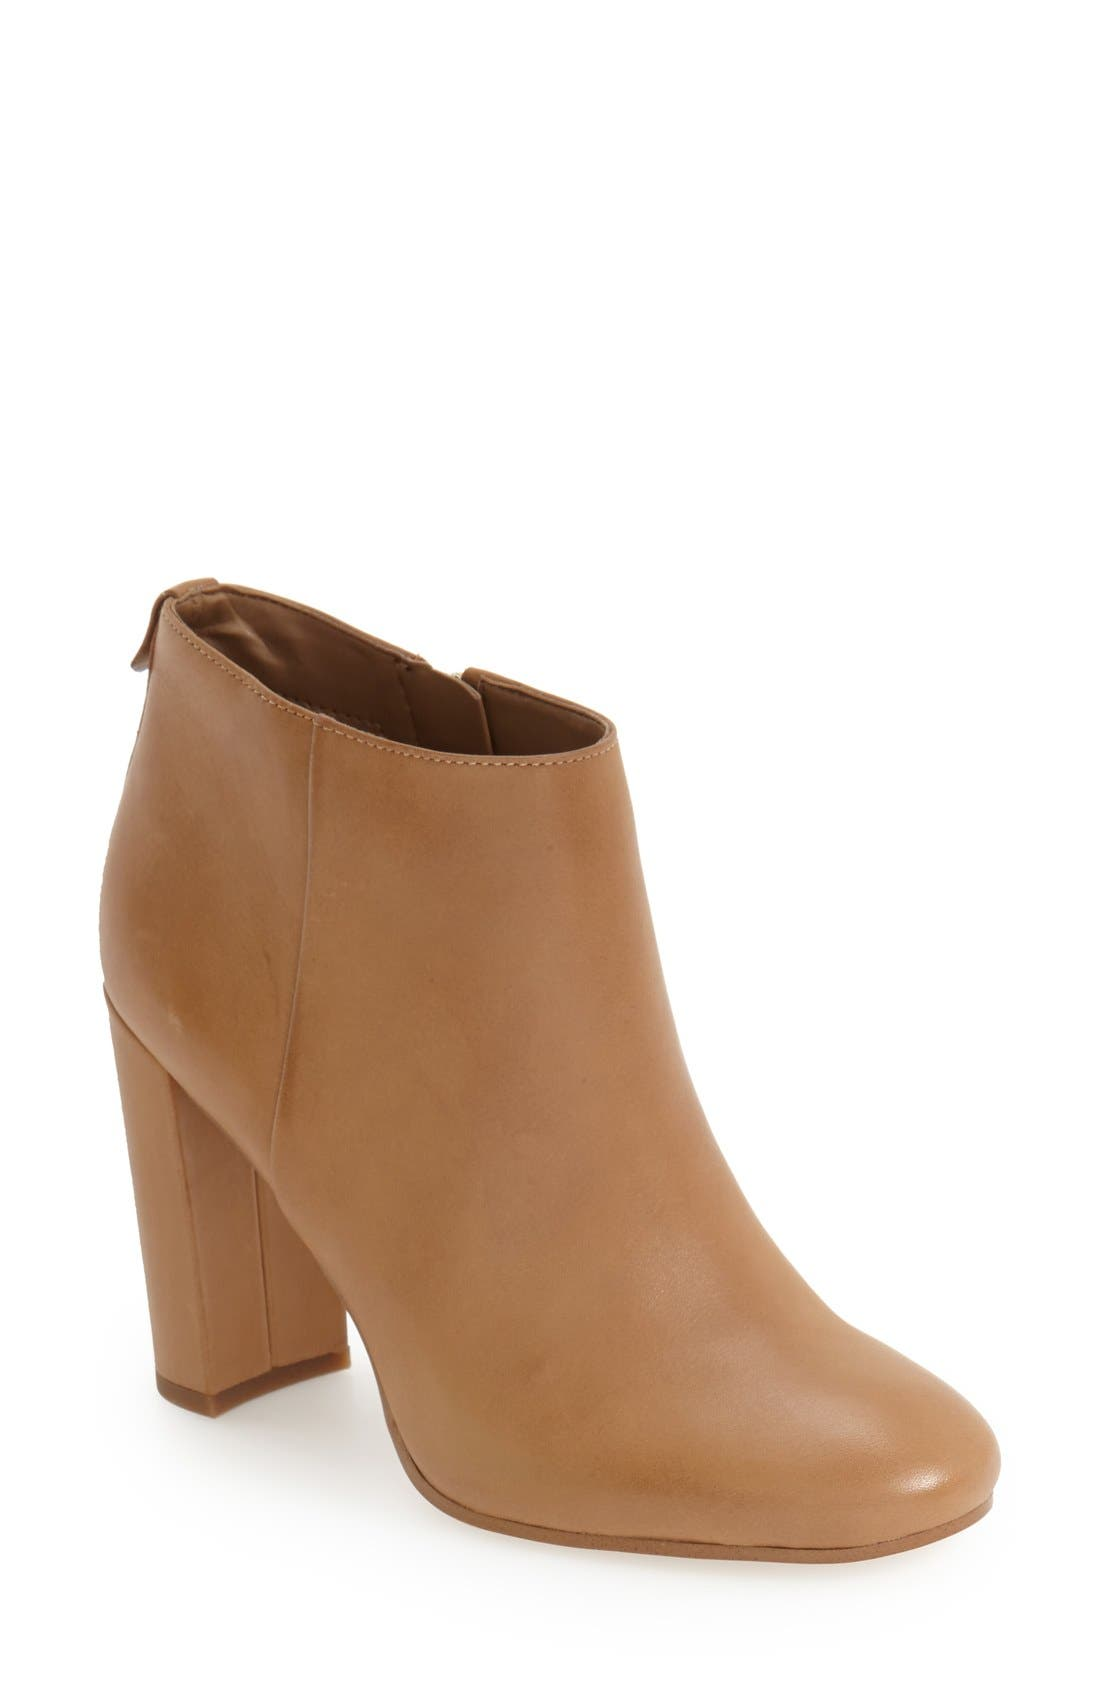 Alternate Image 1 Selected - Sam Edelman 'Cambell' Bootie (Women)